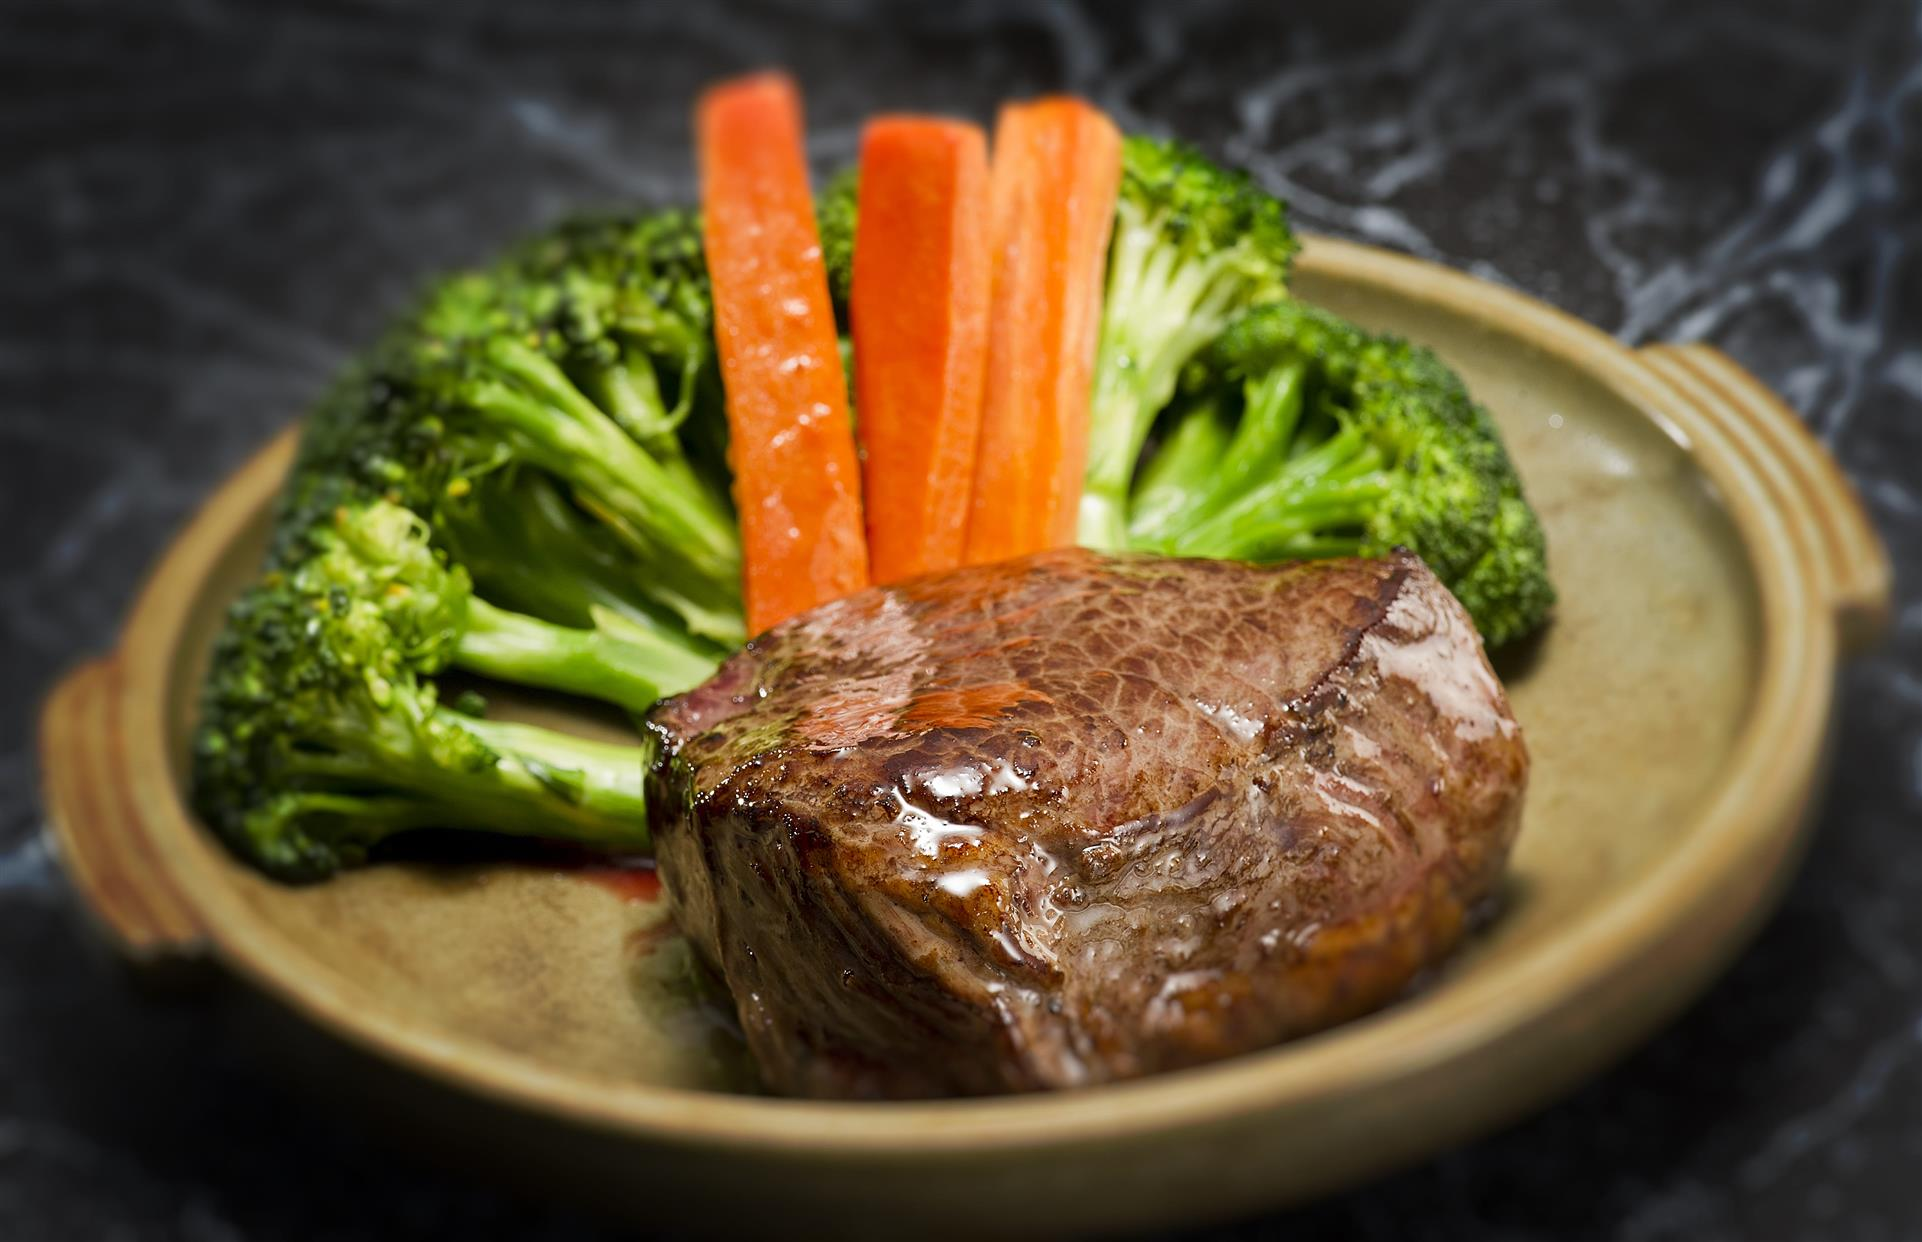 chunk of beef and broccoli served with carrot sticks